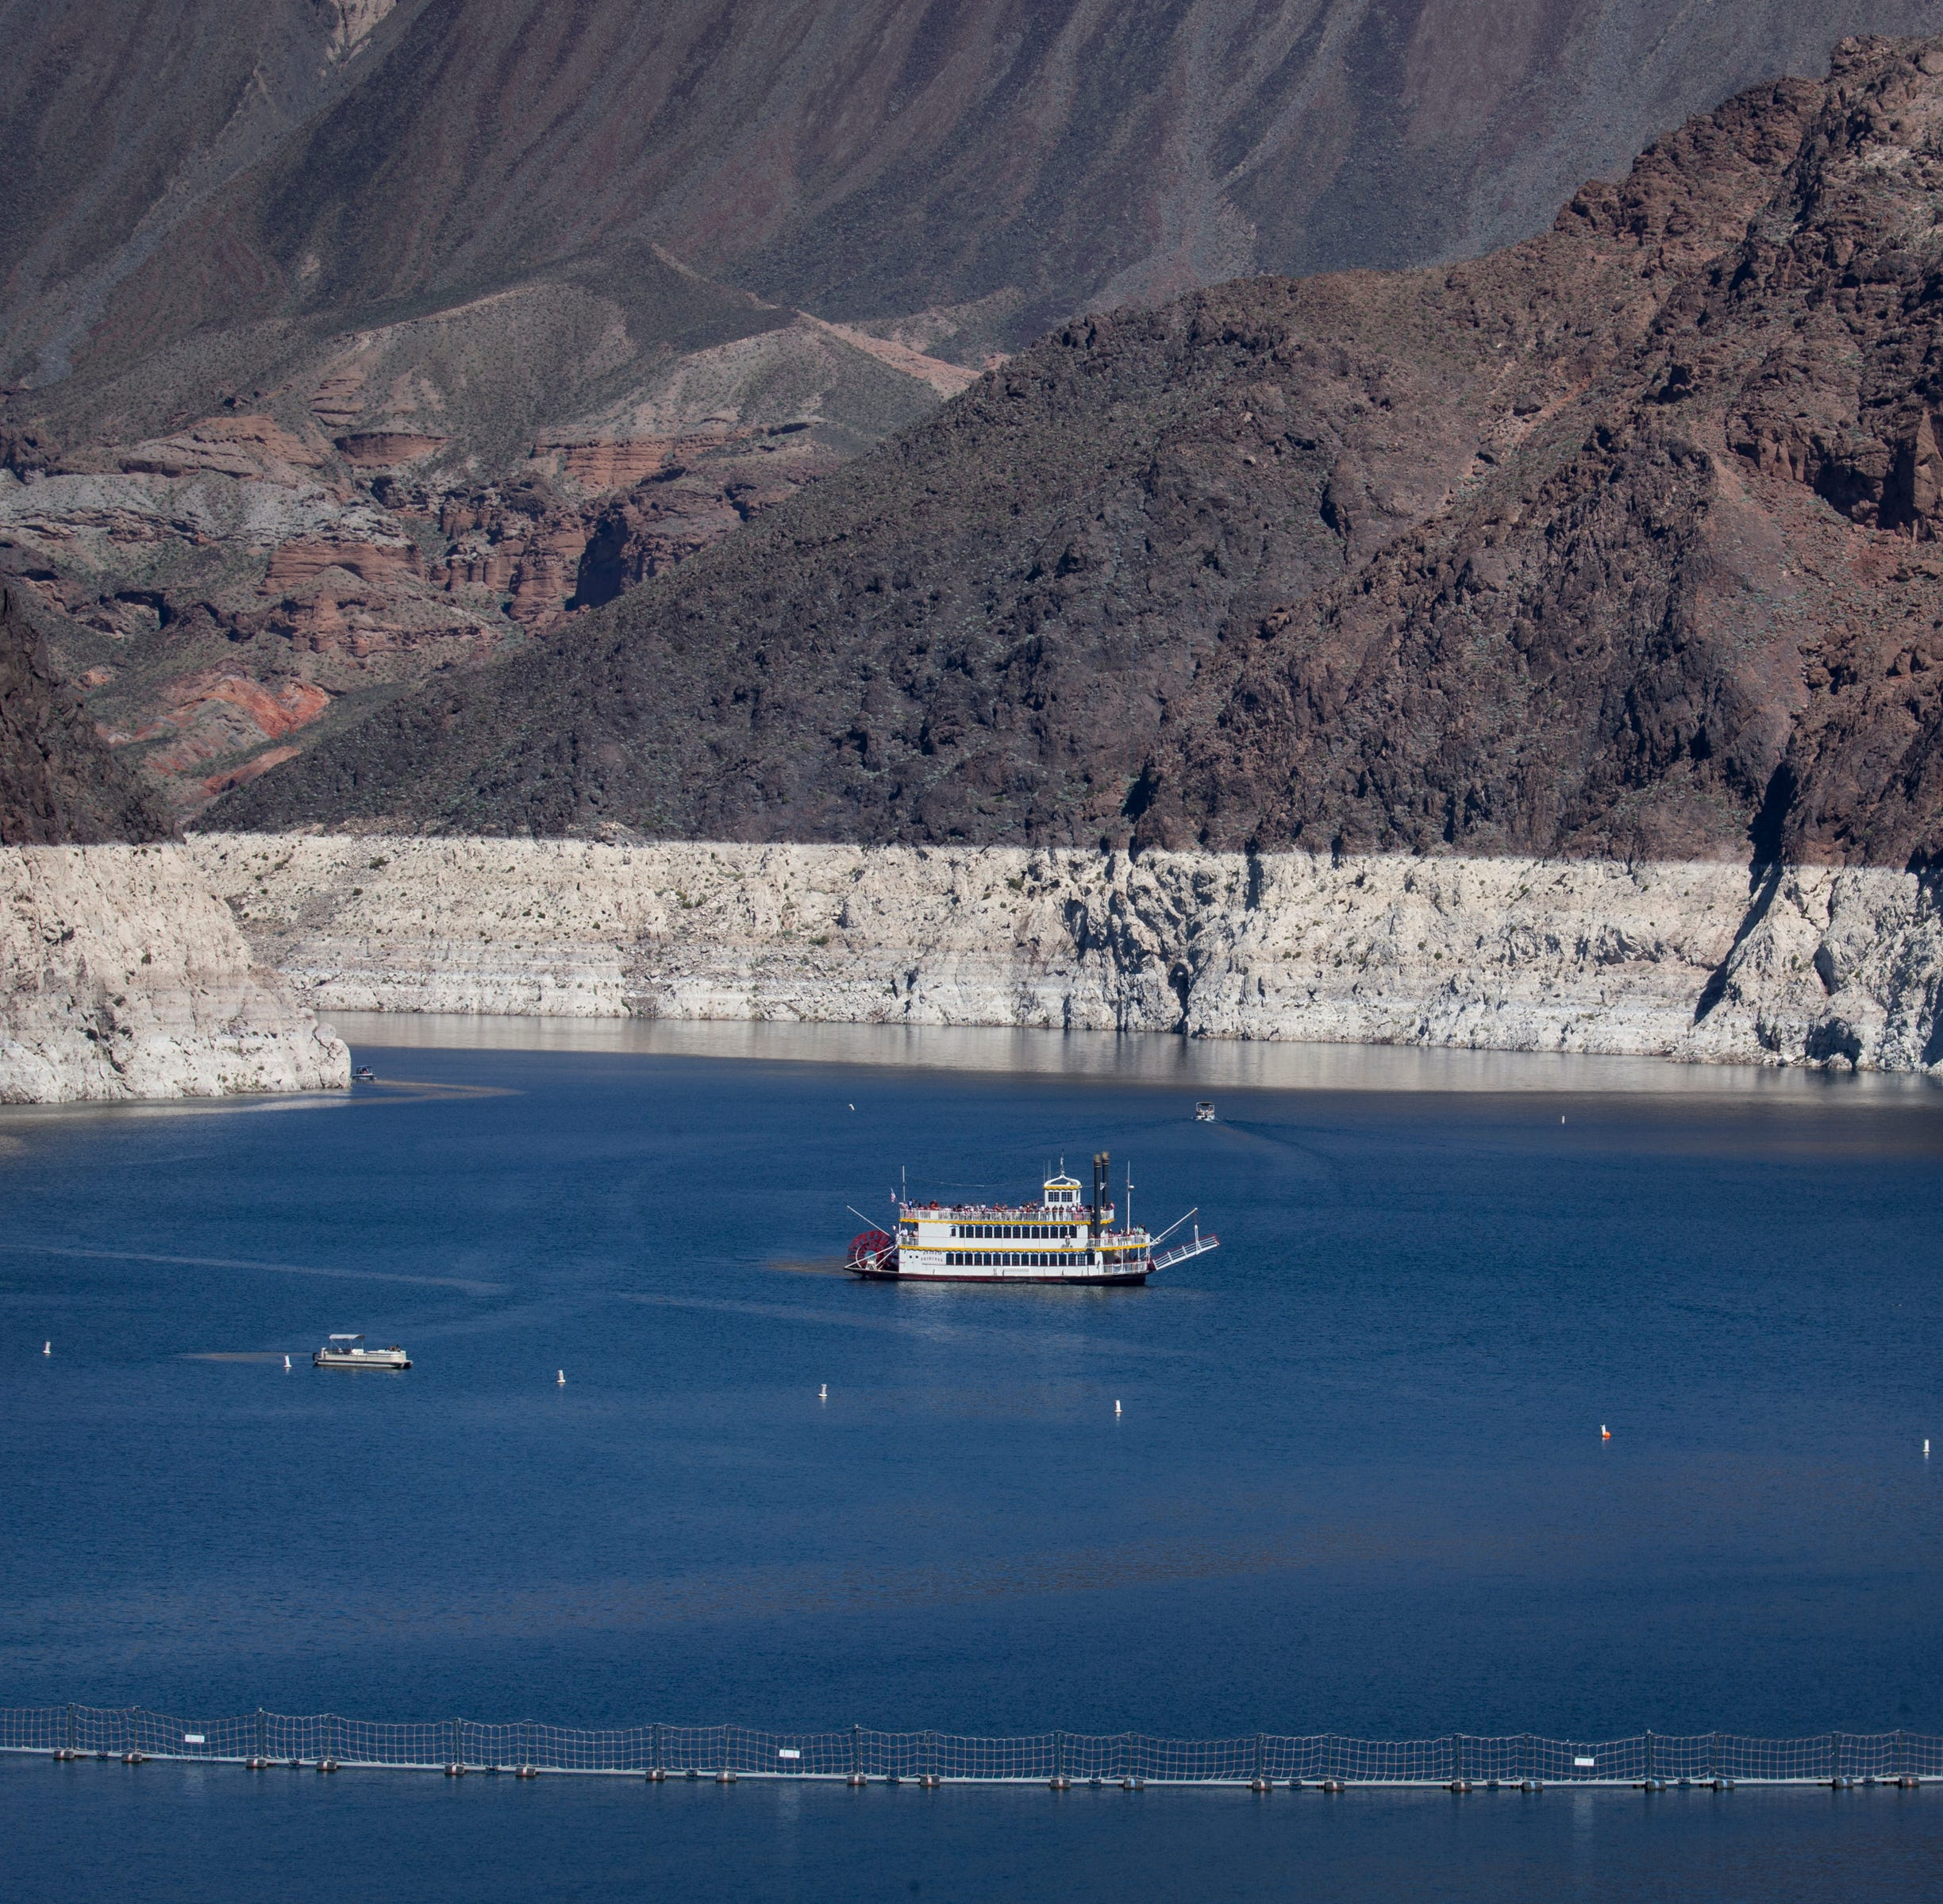 Here's what the Colorado River deal will do, and why some criticize Arizona's approach